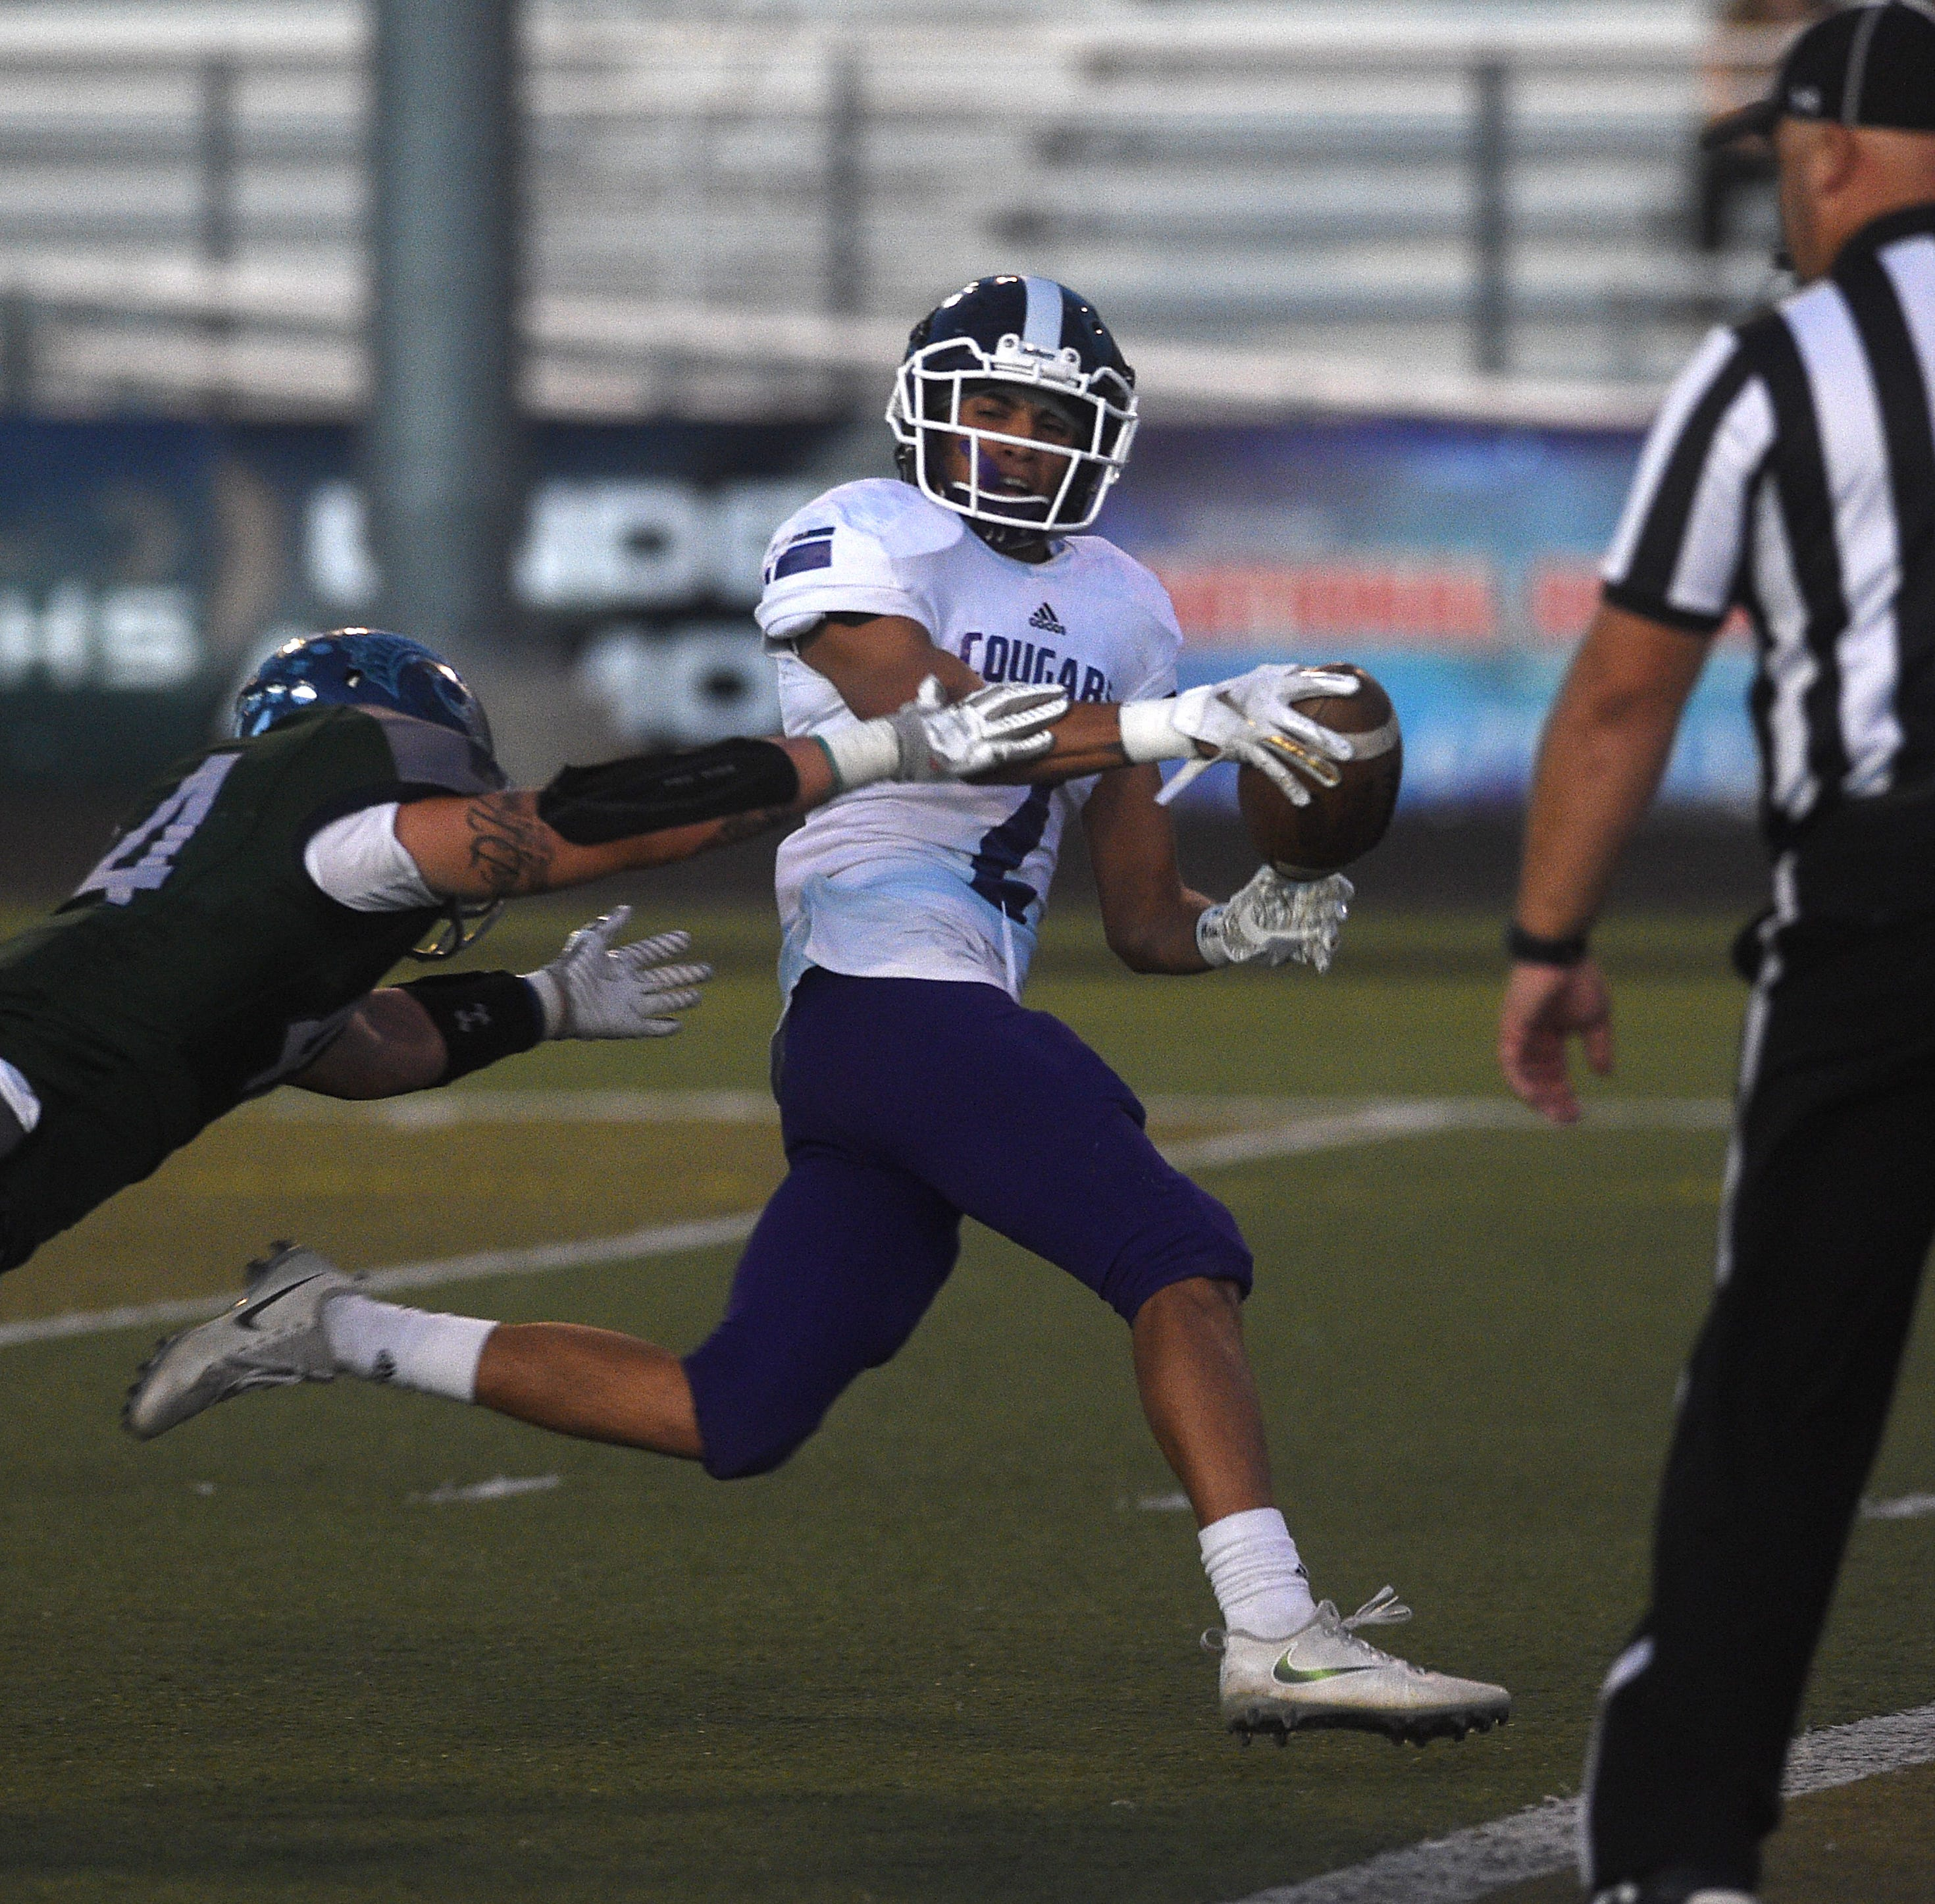 Spanish Springs receivers having breakout season